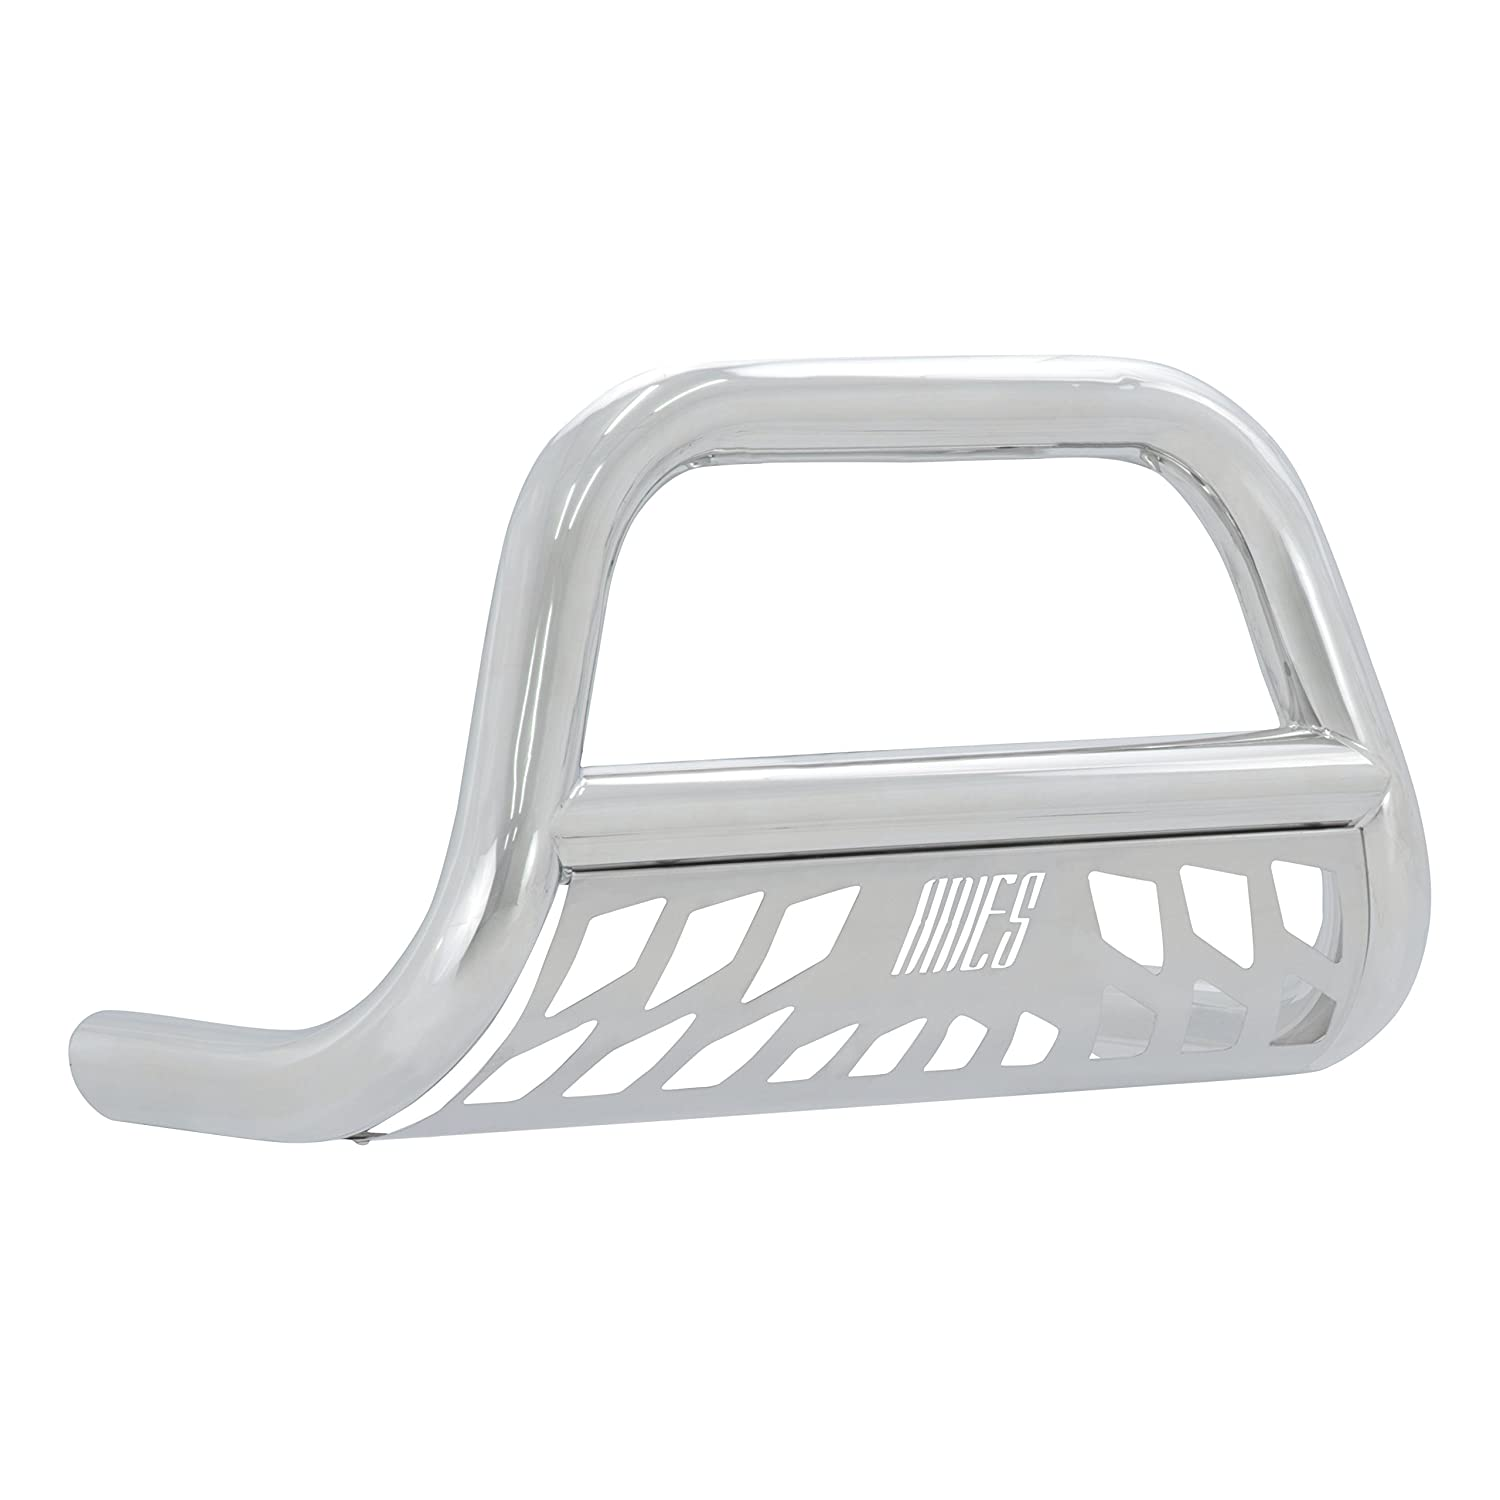 Aries Automotive 35-3011 Stainless Steel Bull Bar with Skid Plate